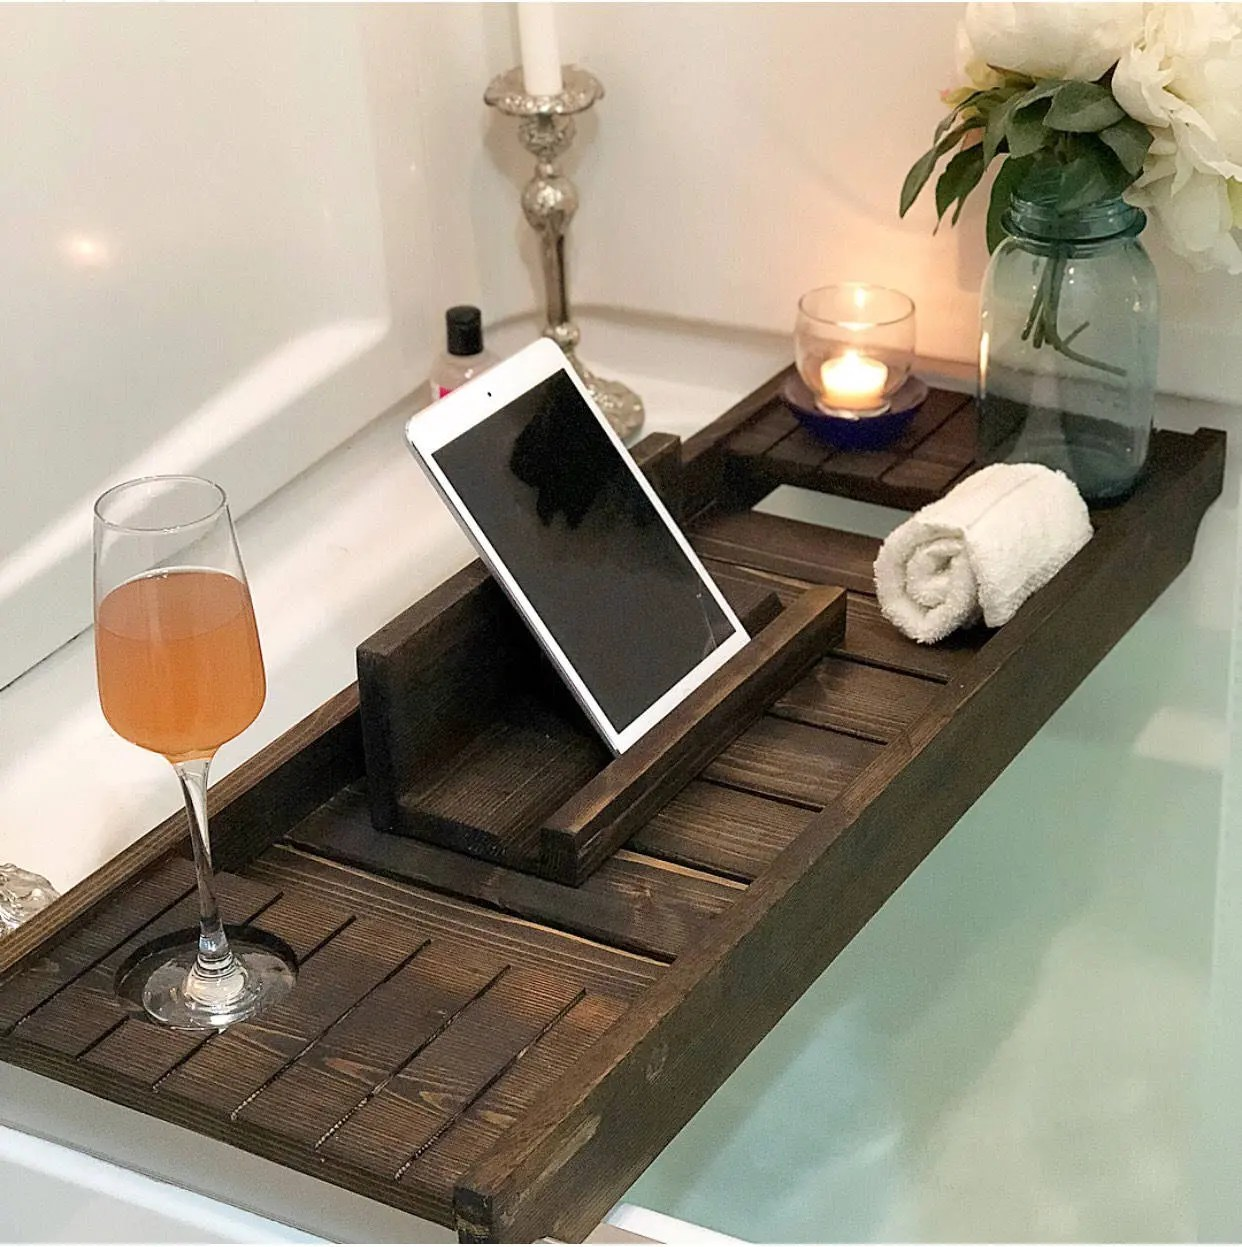 Bath Tray With Wine Holder Bath Caddy Bath Tray With IPad